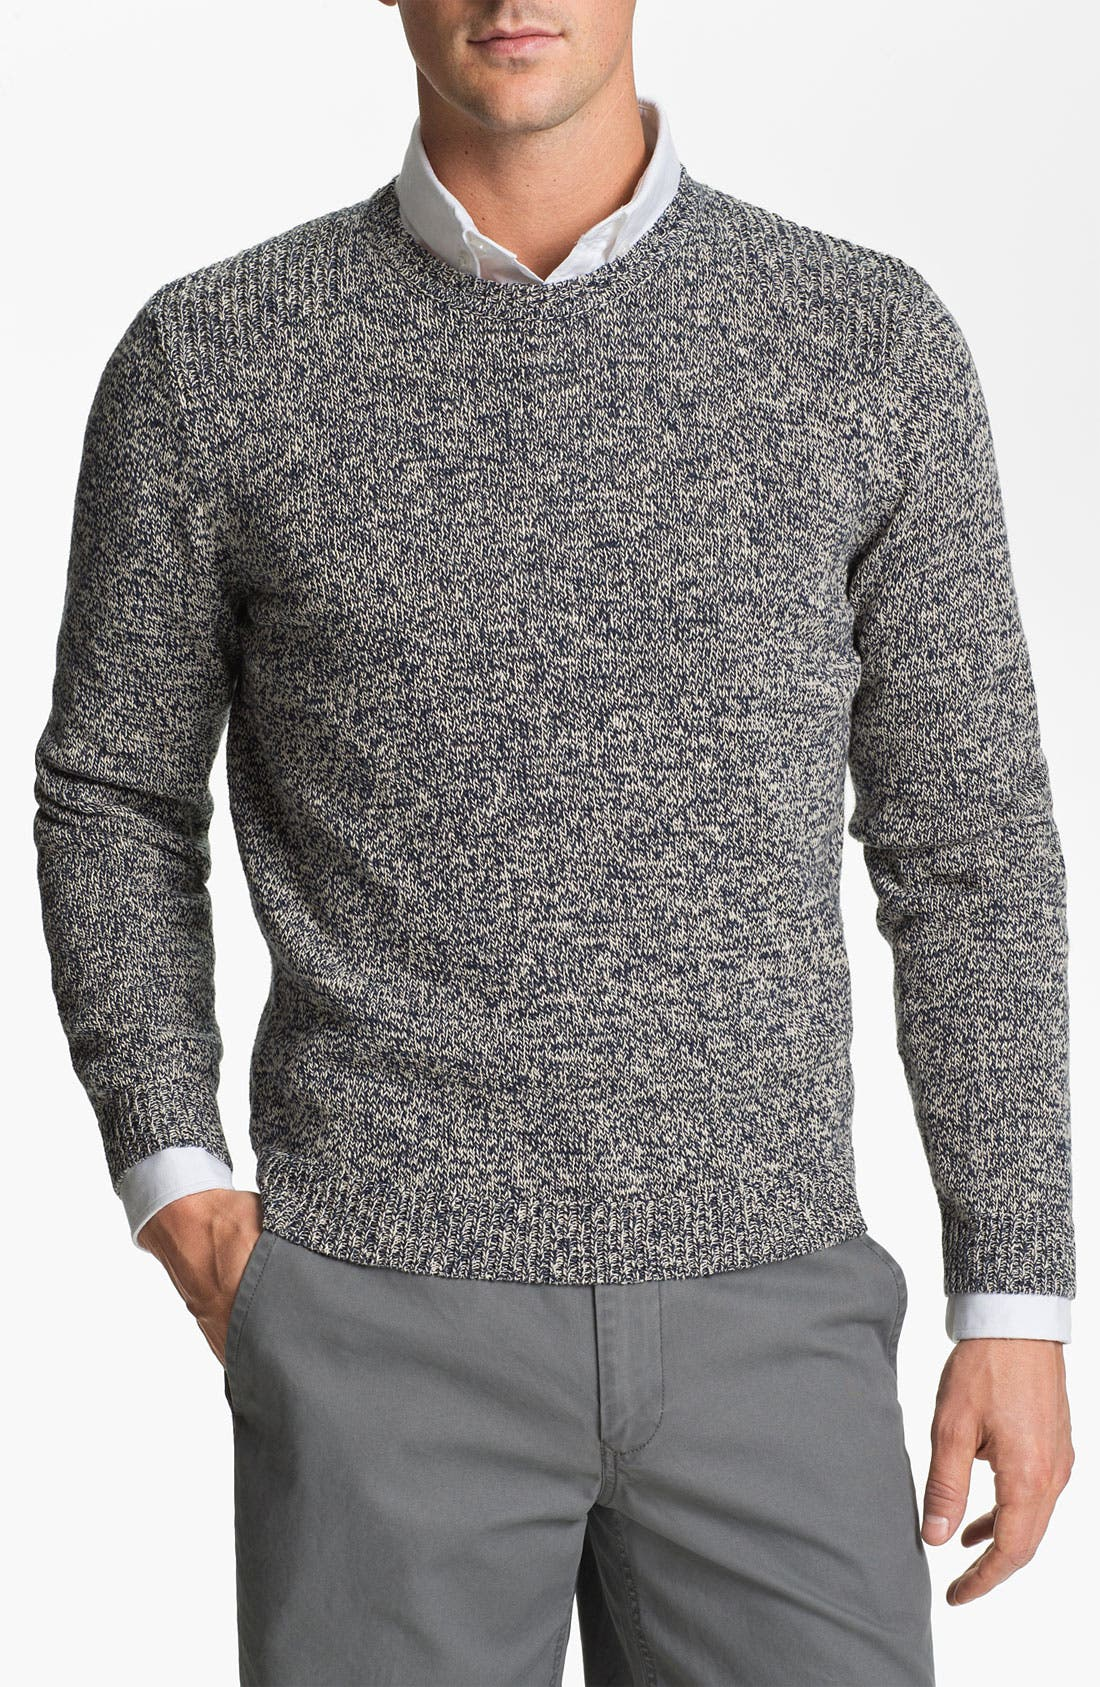 Alternate Image 1 Selected - Ted Baker London 'Keyston' Cotton & Linen Crewneck Sweater